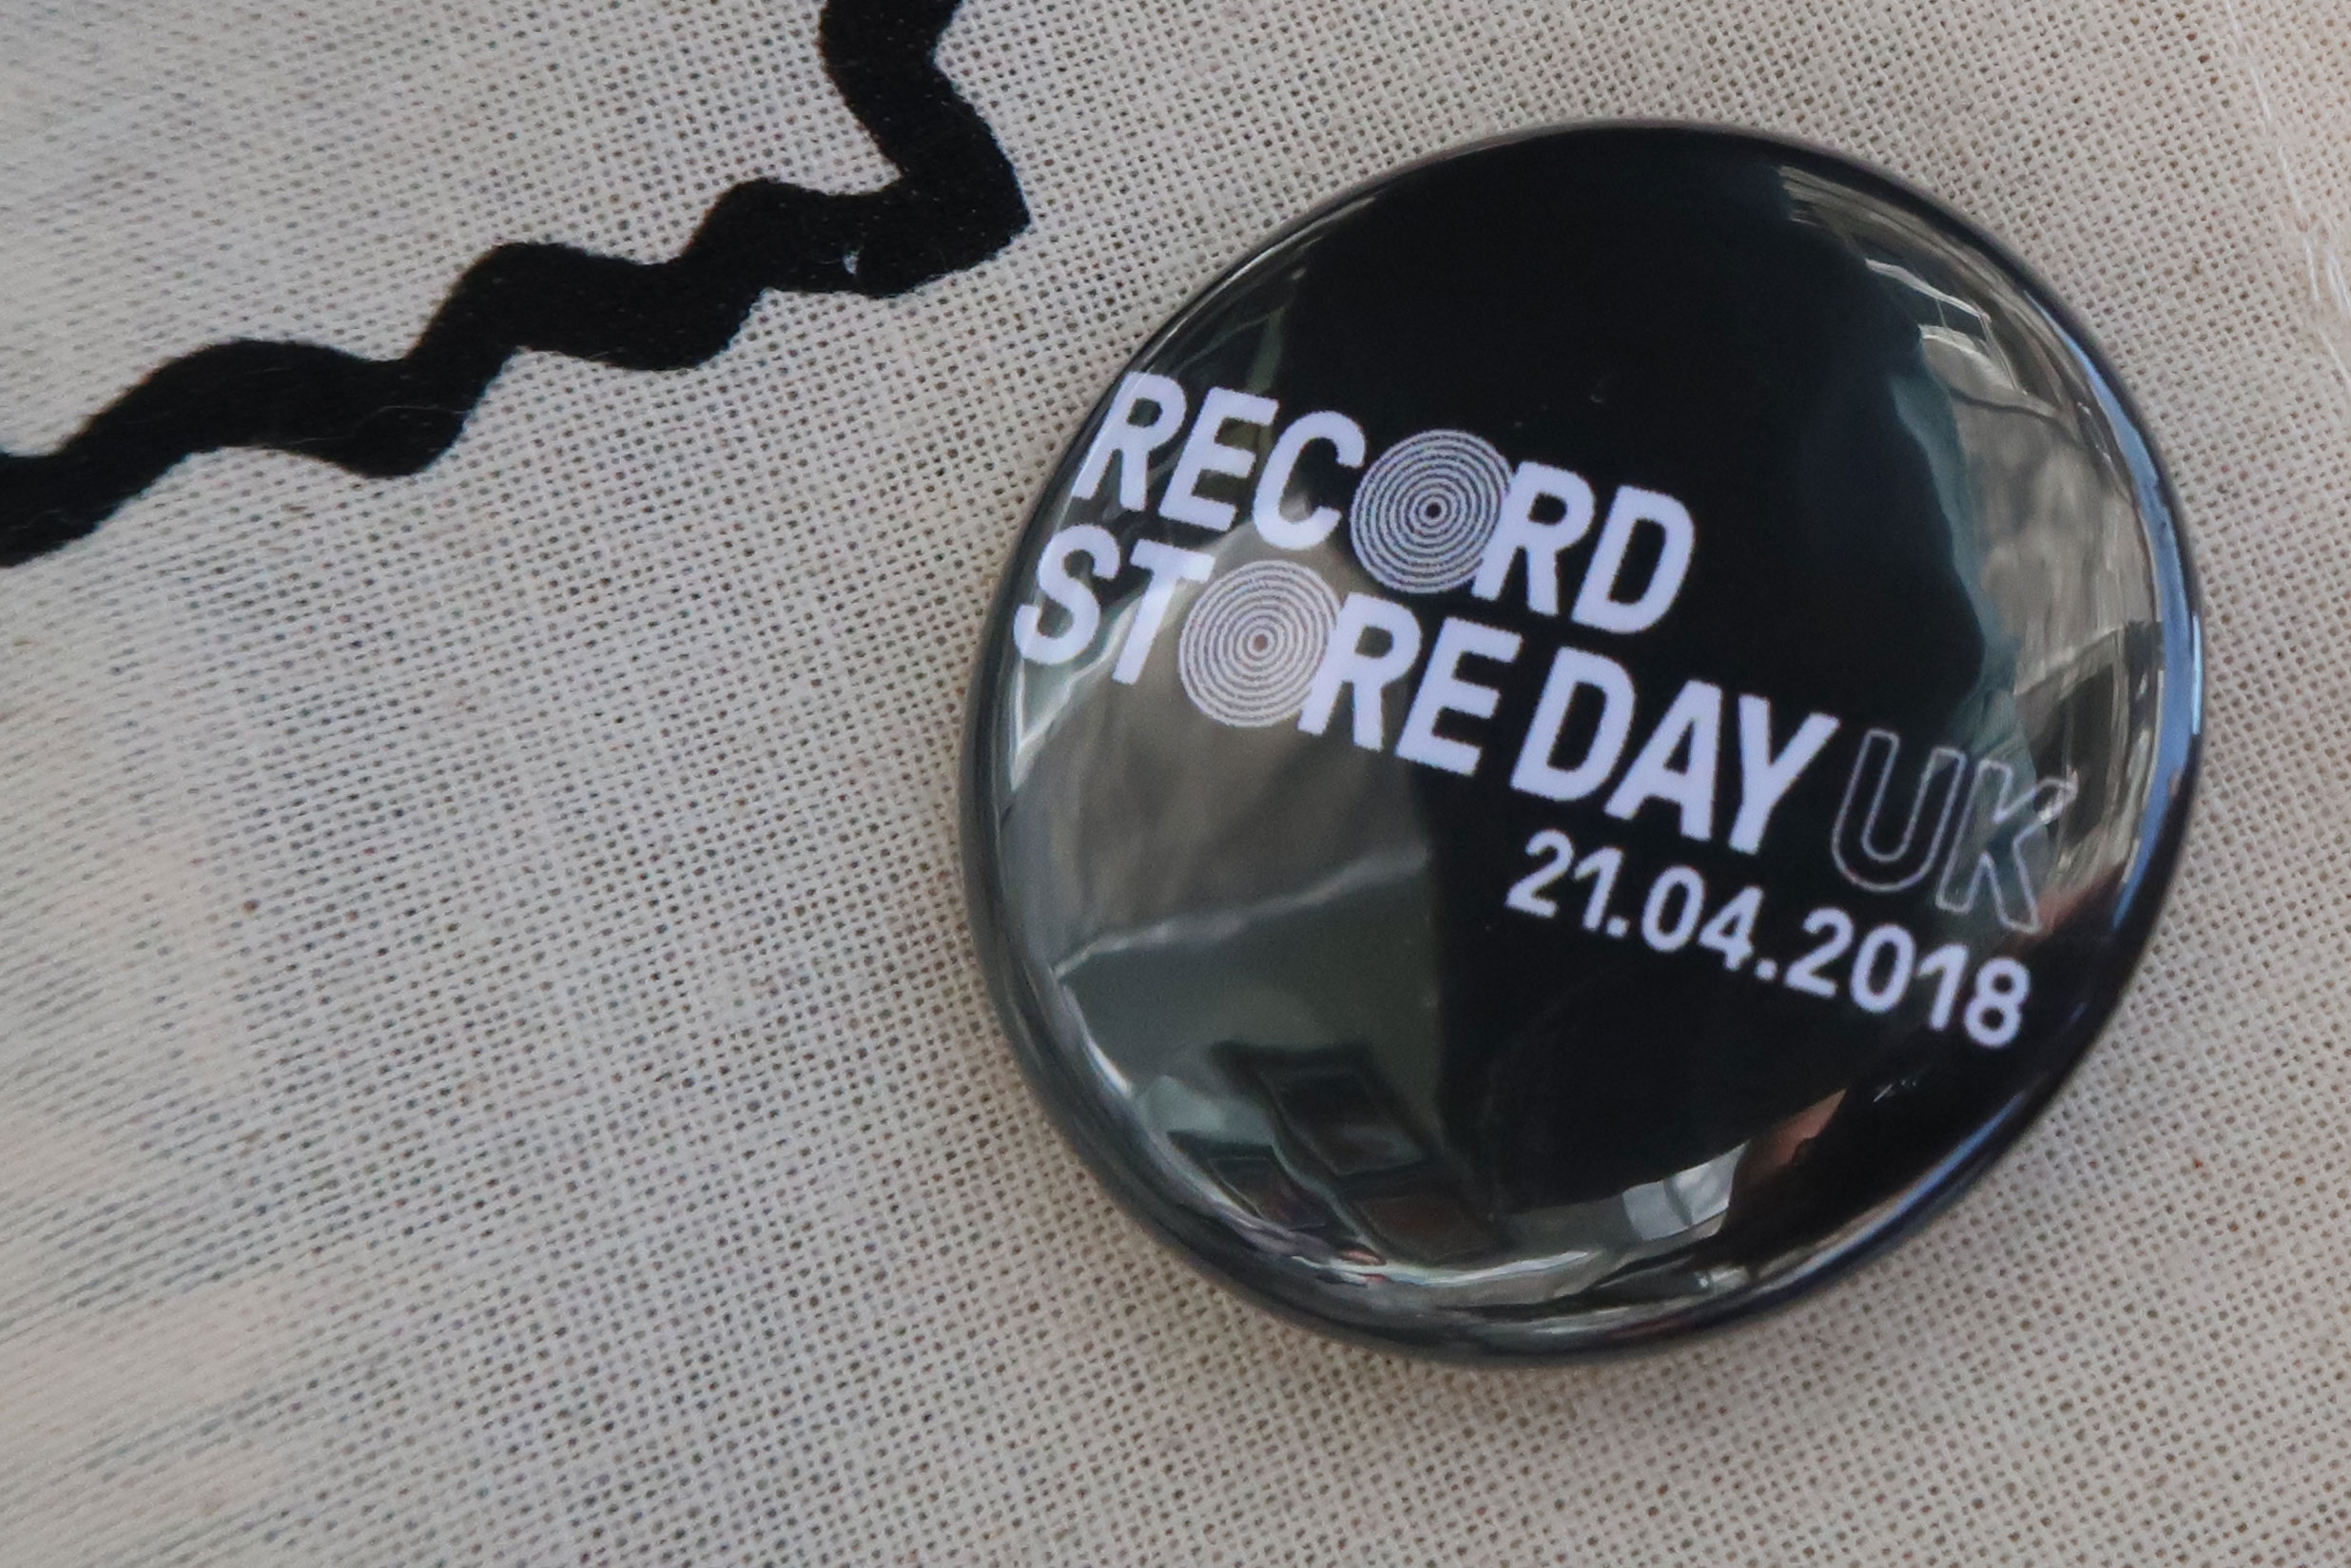 Record Store Day 2018 in Liverpool